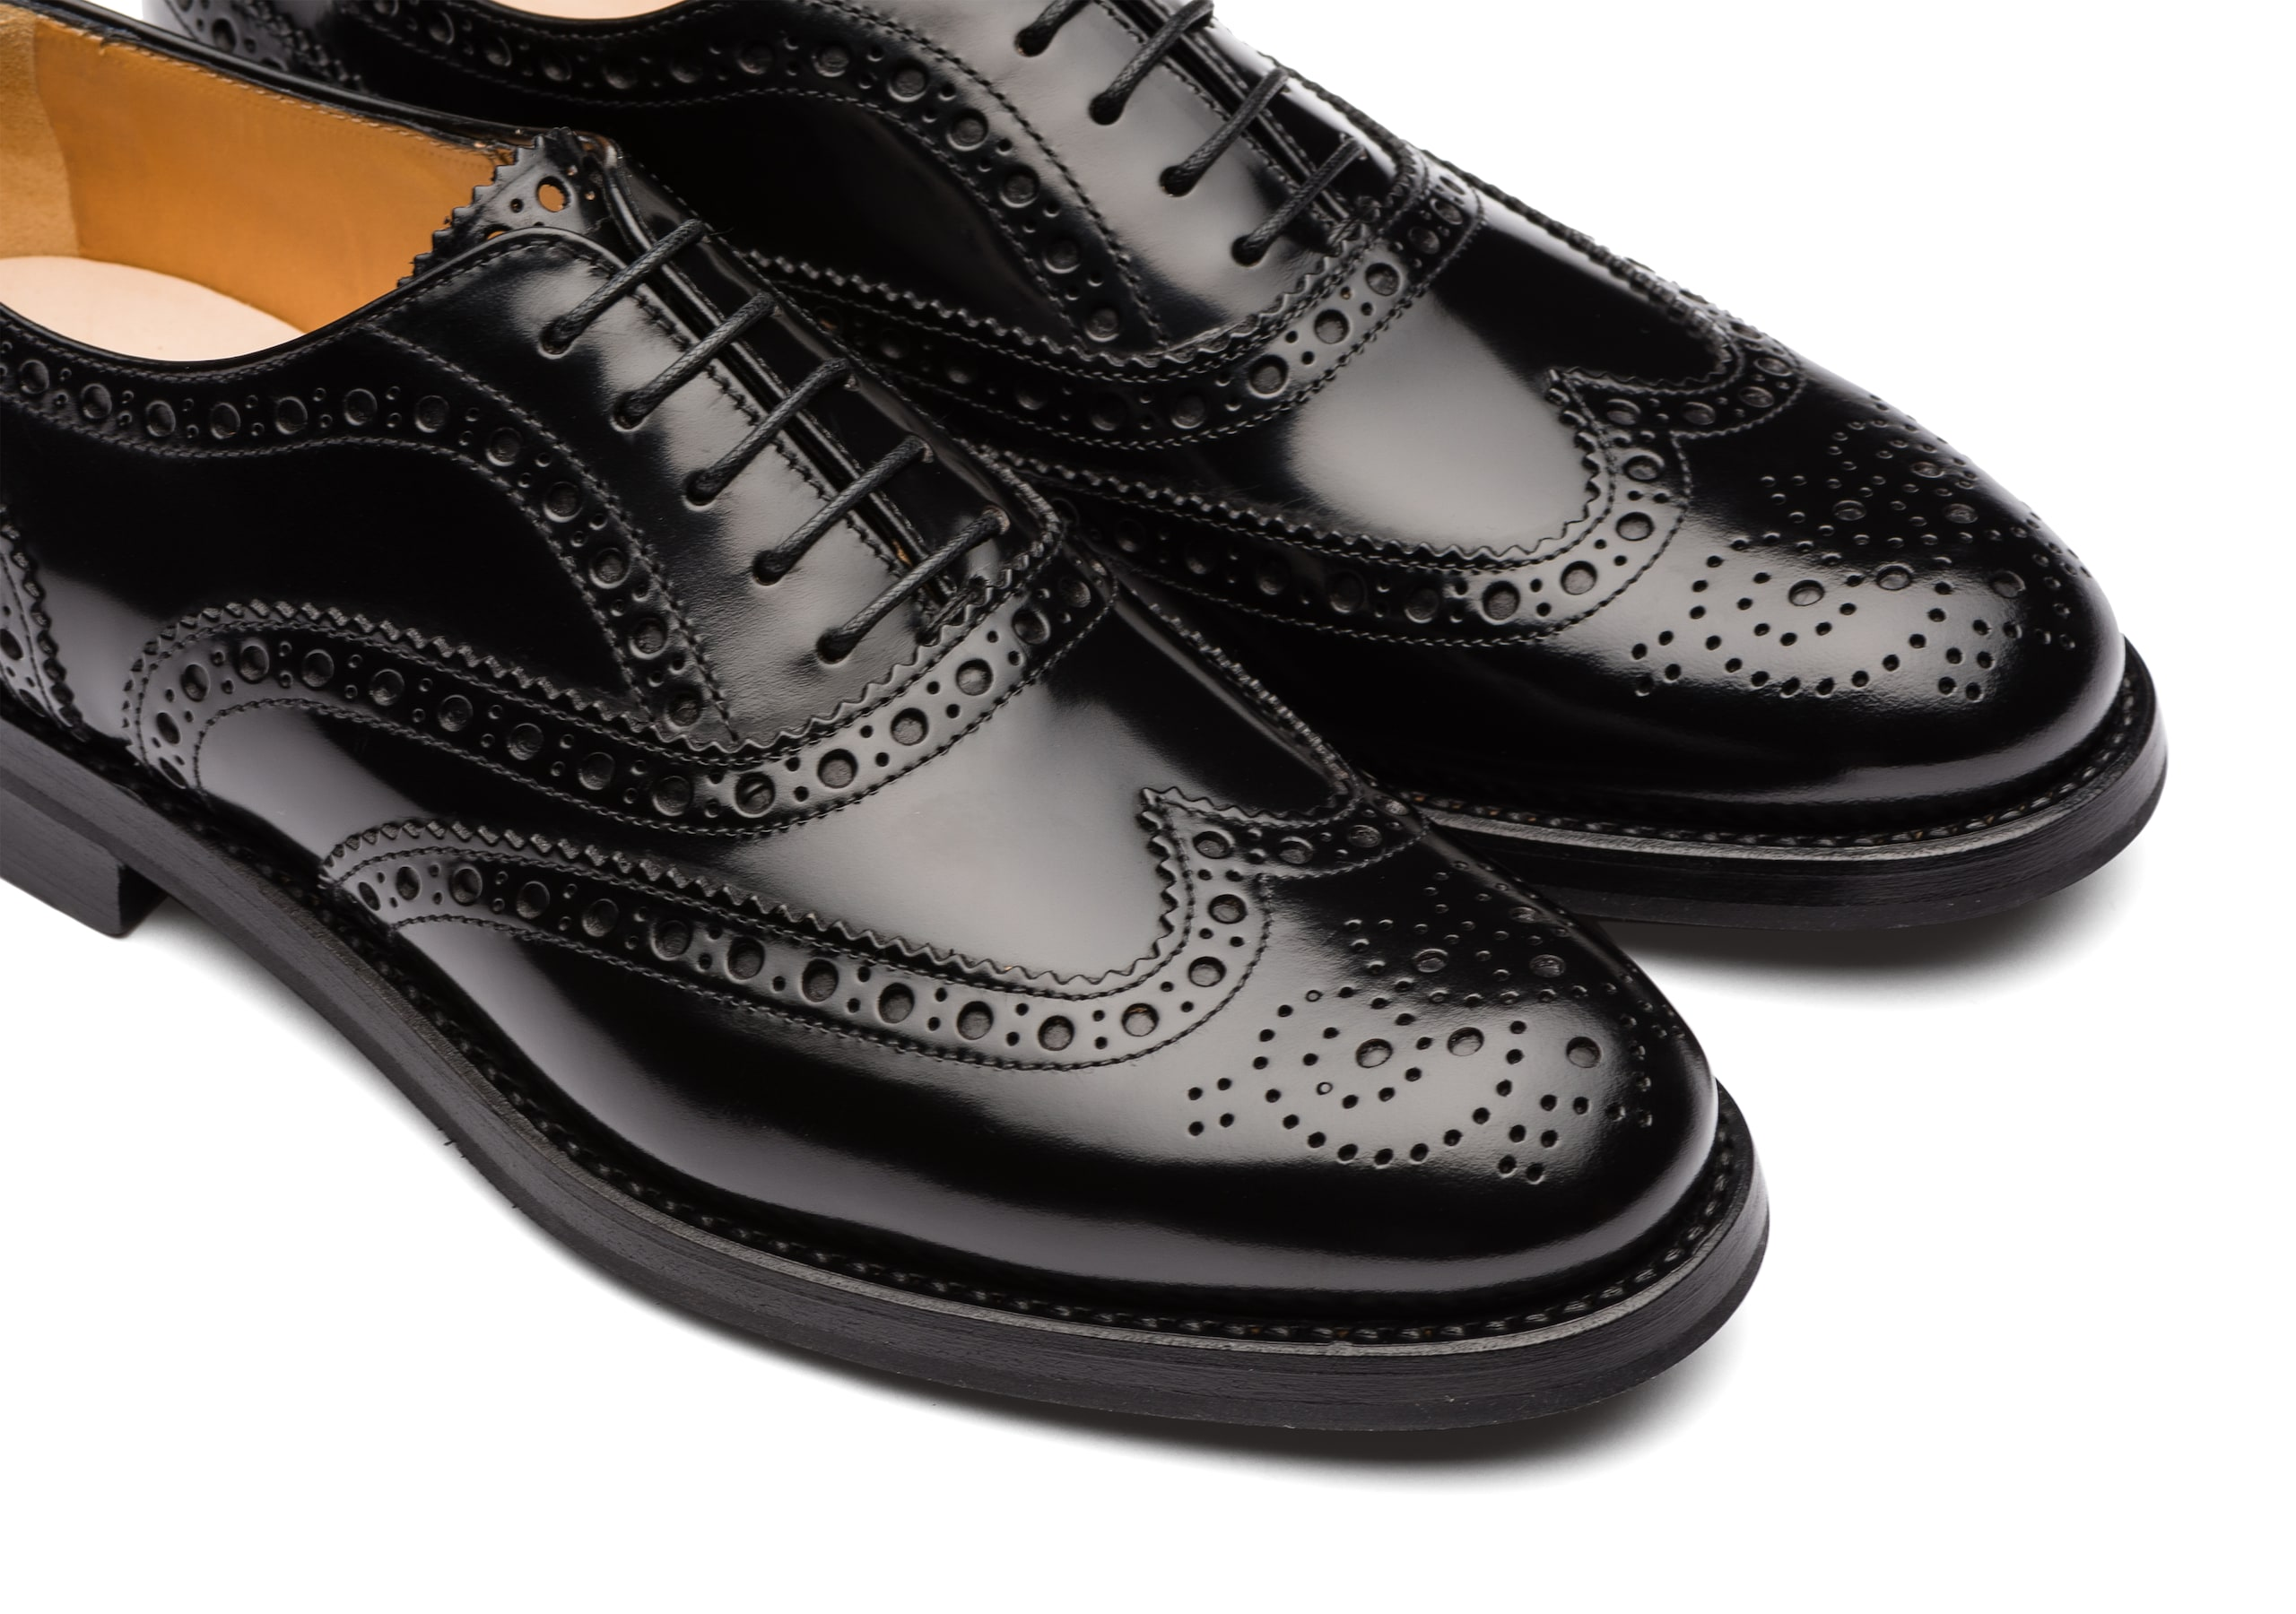 Burwood wg Church's Polished Binder Oxford Brogue Black